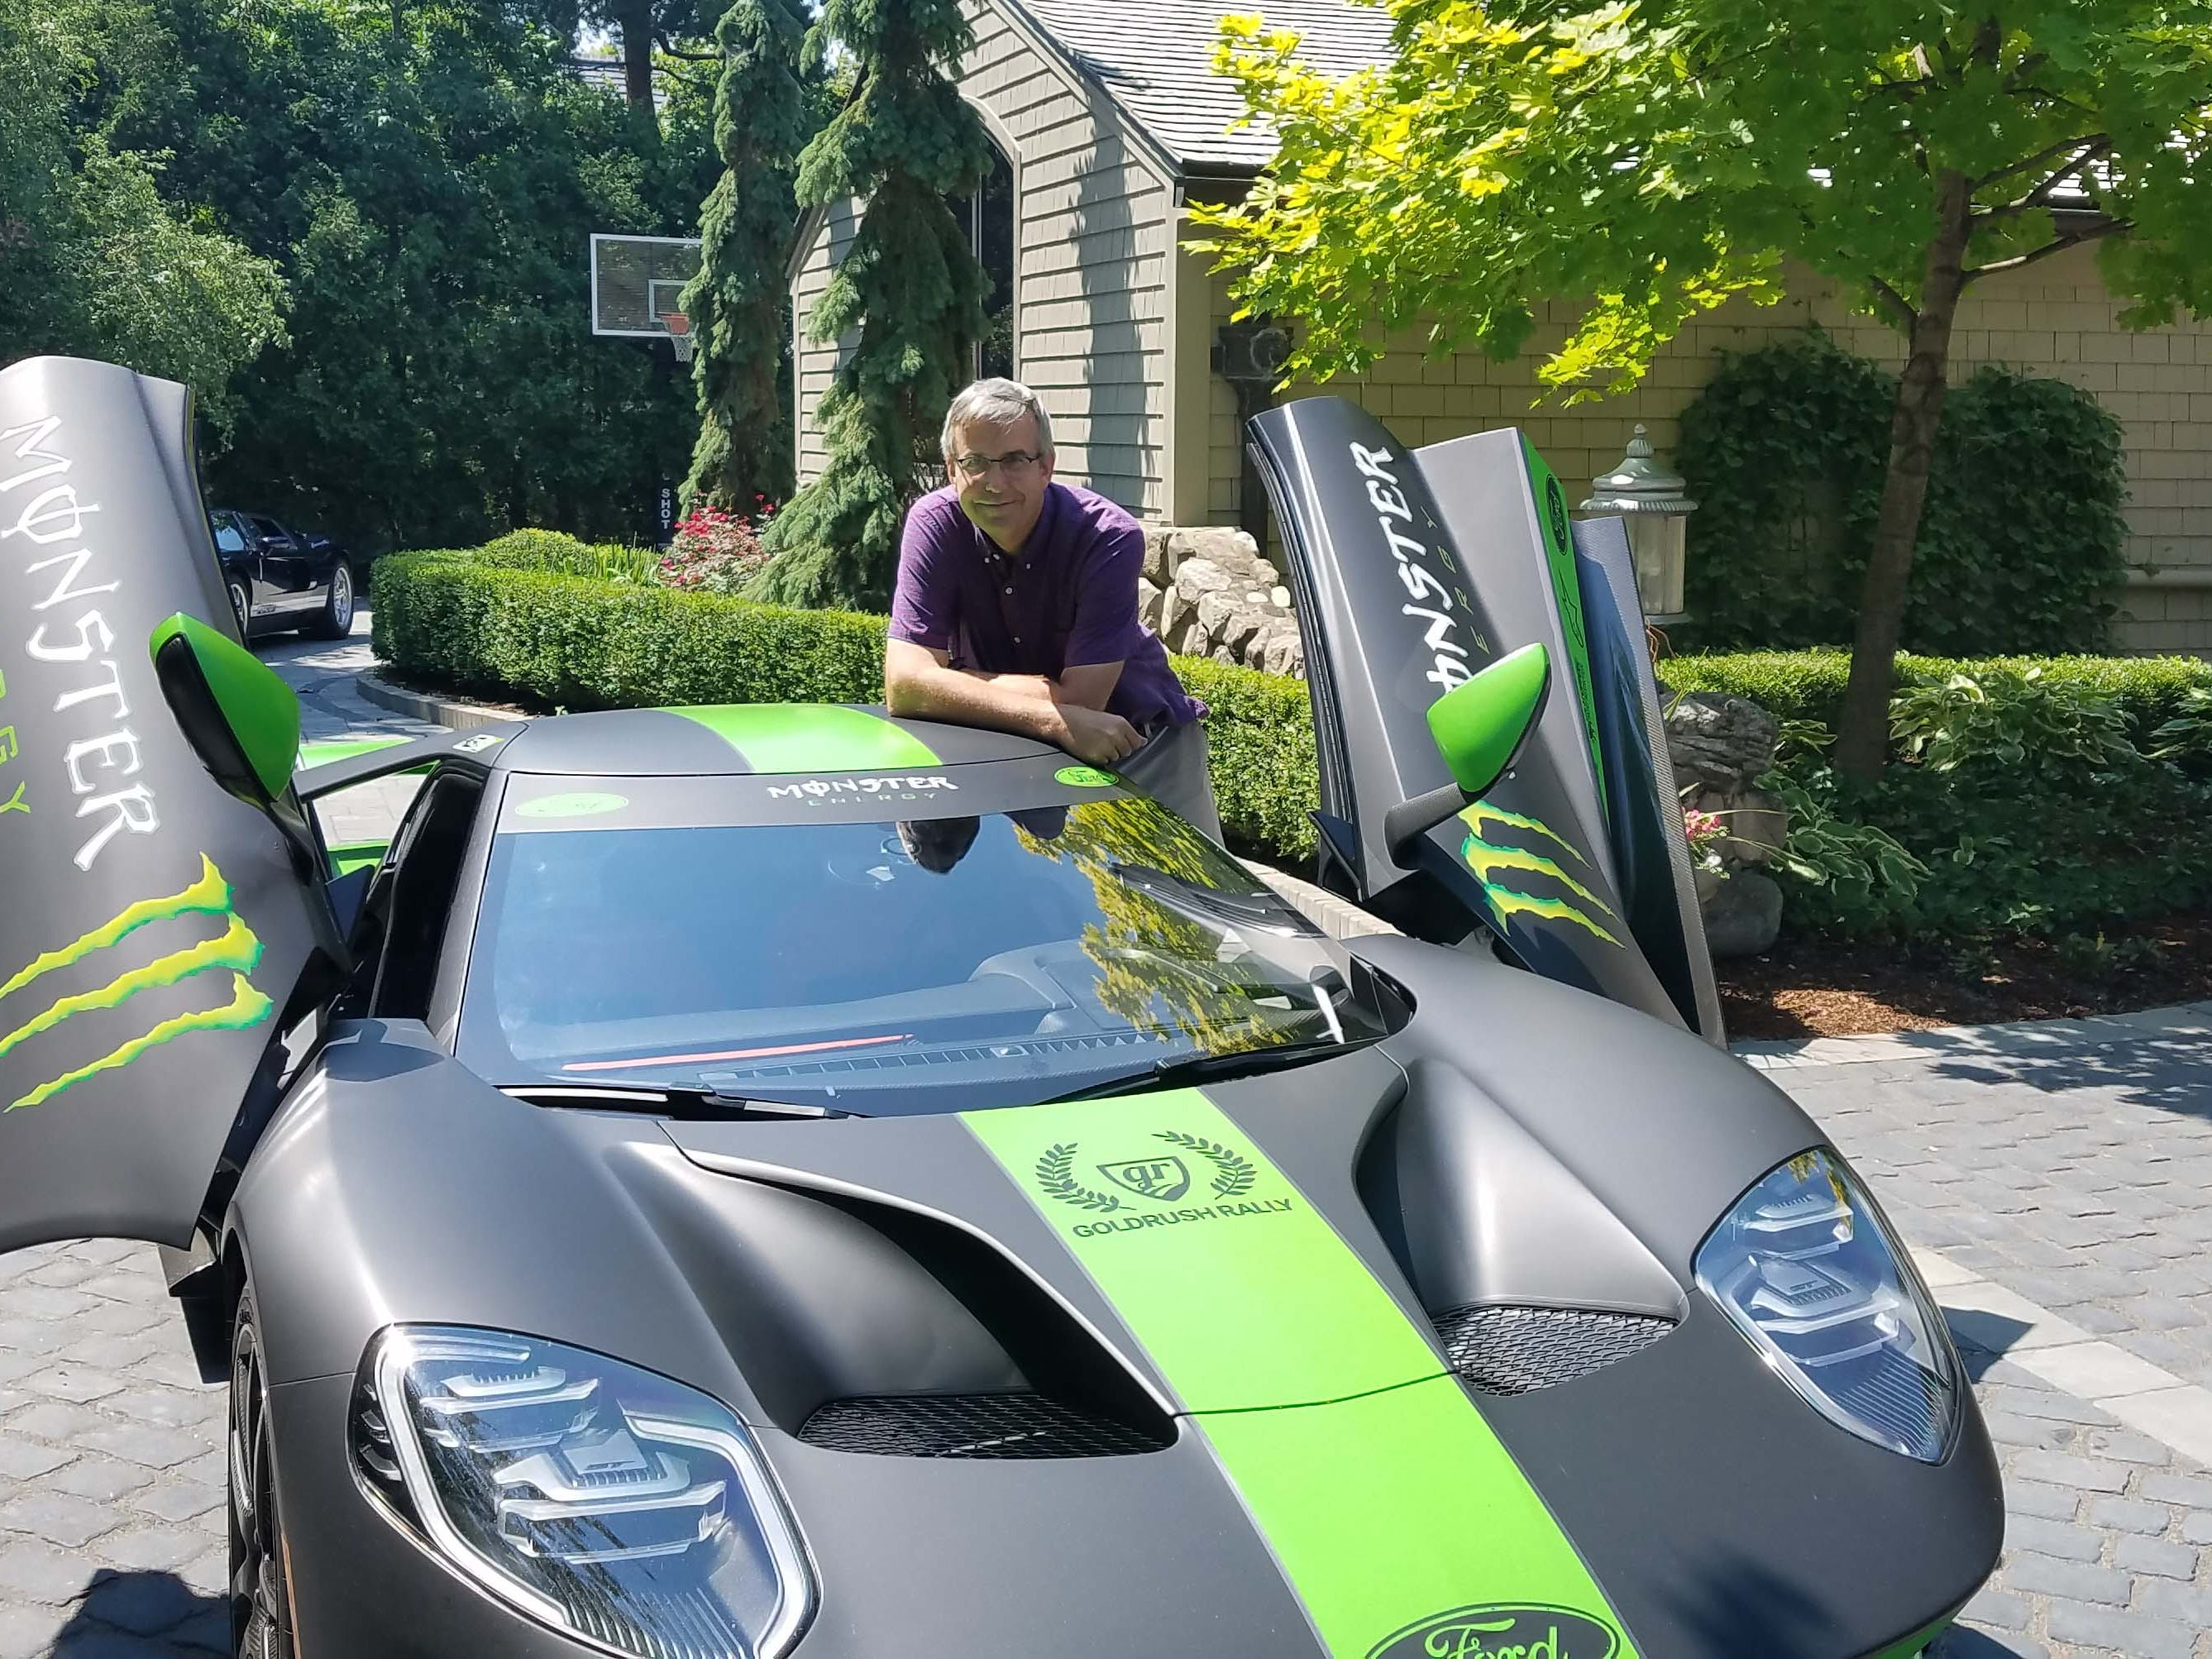 Detroit News auto critic Henry Payne got Kurt Busch's permission to take his Ford GT for a quick spin around Oakland County streets.